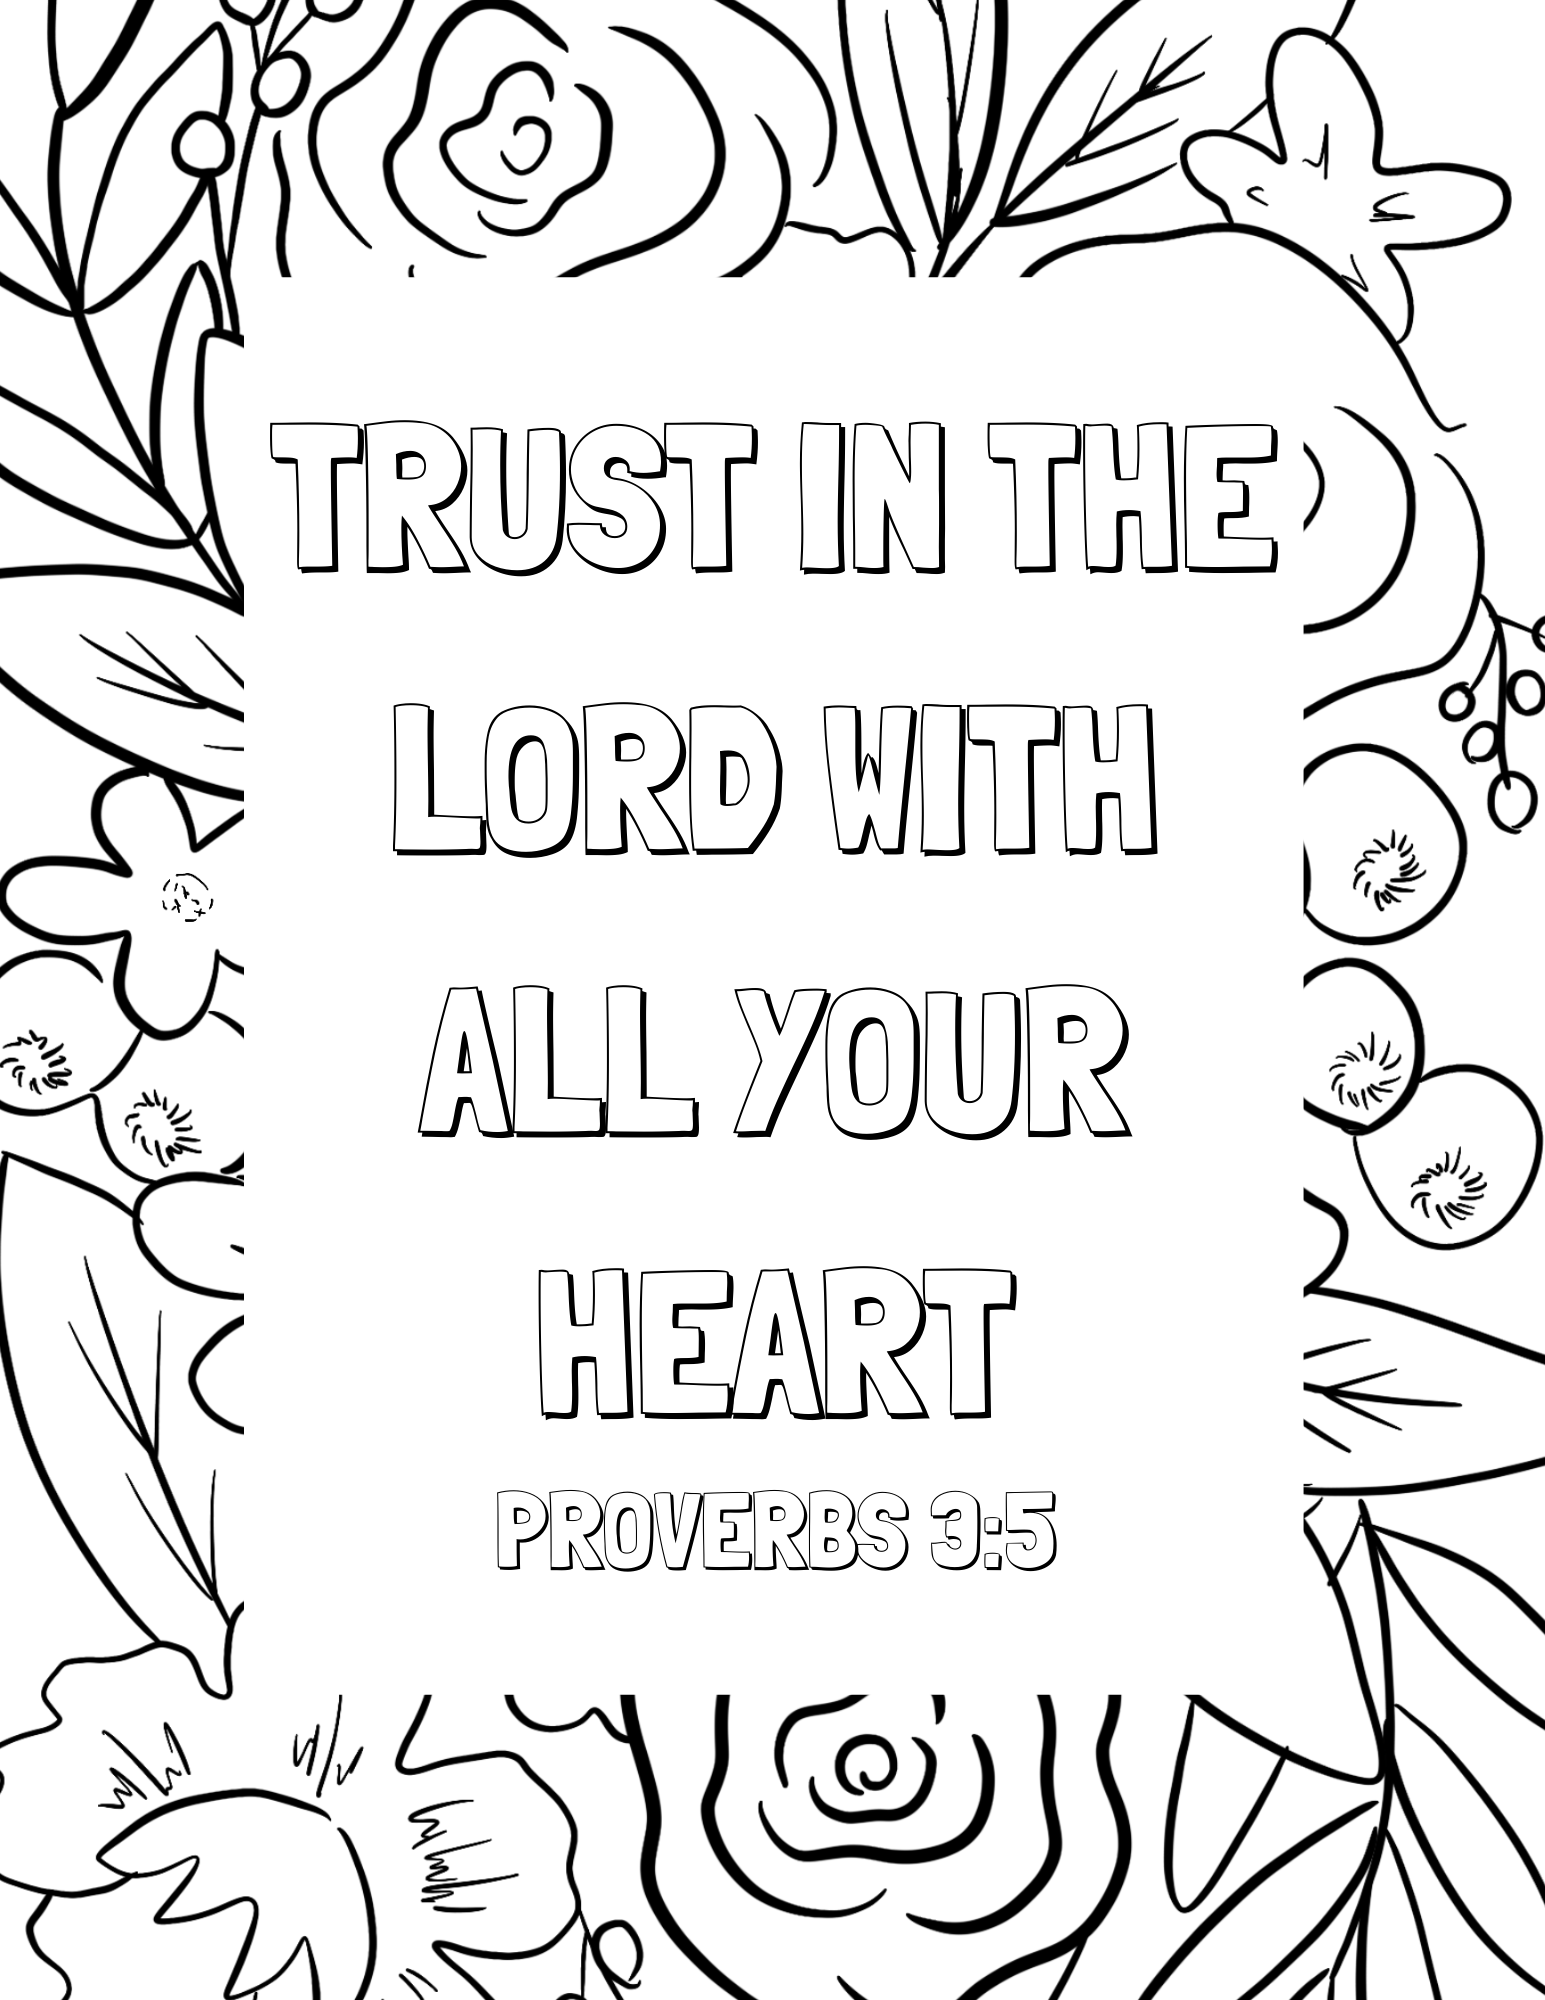 free bible verse coloring pages top 10 free printable bible verse coloring pages online bible coloring free verse pages